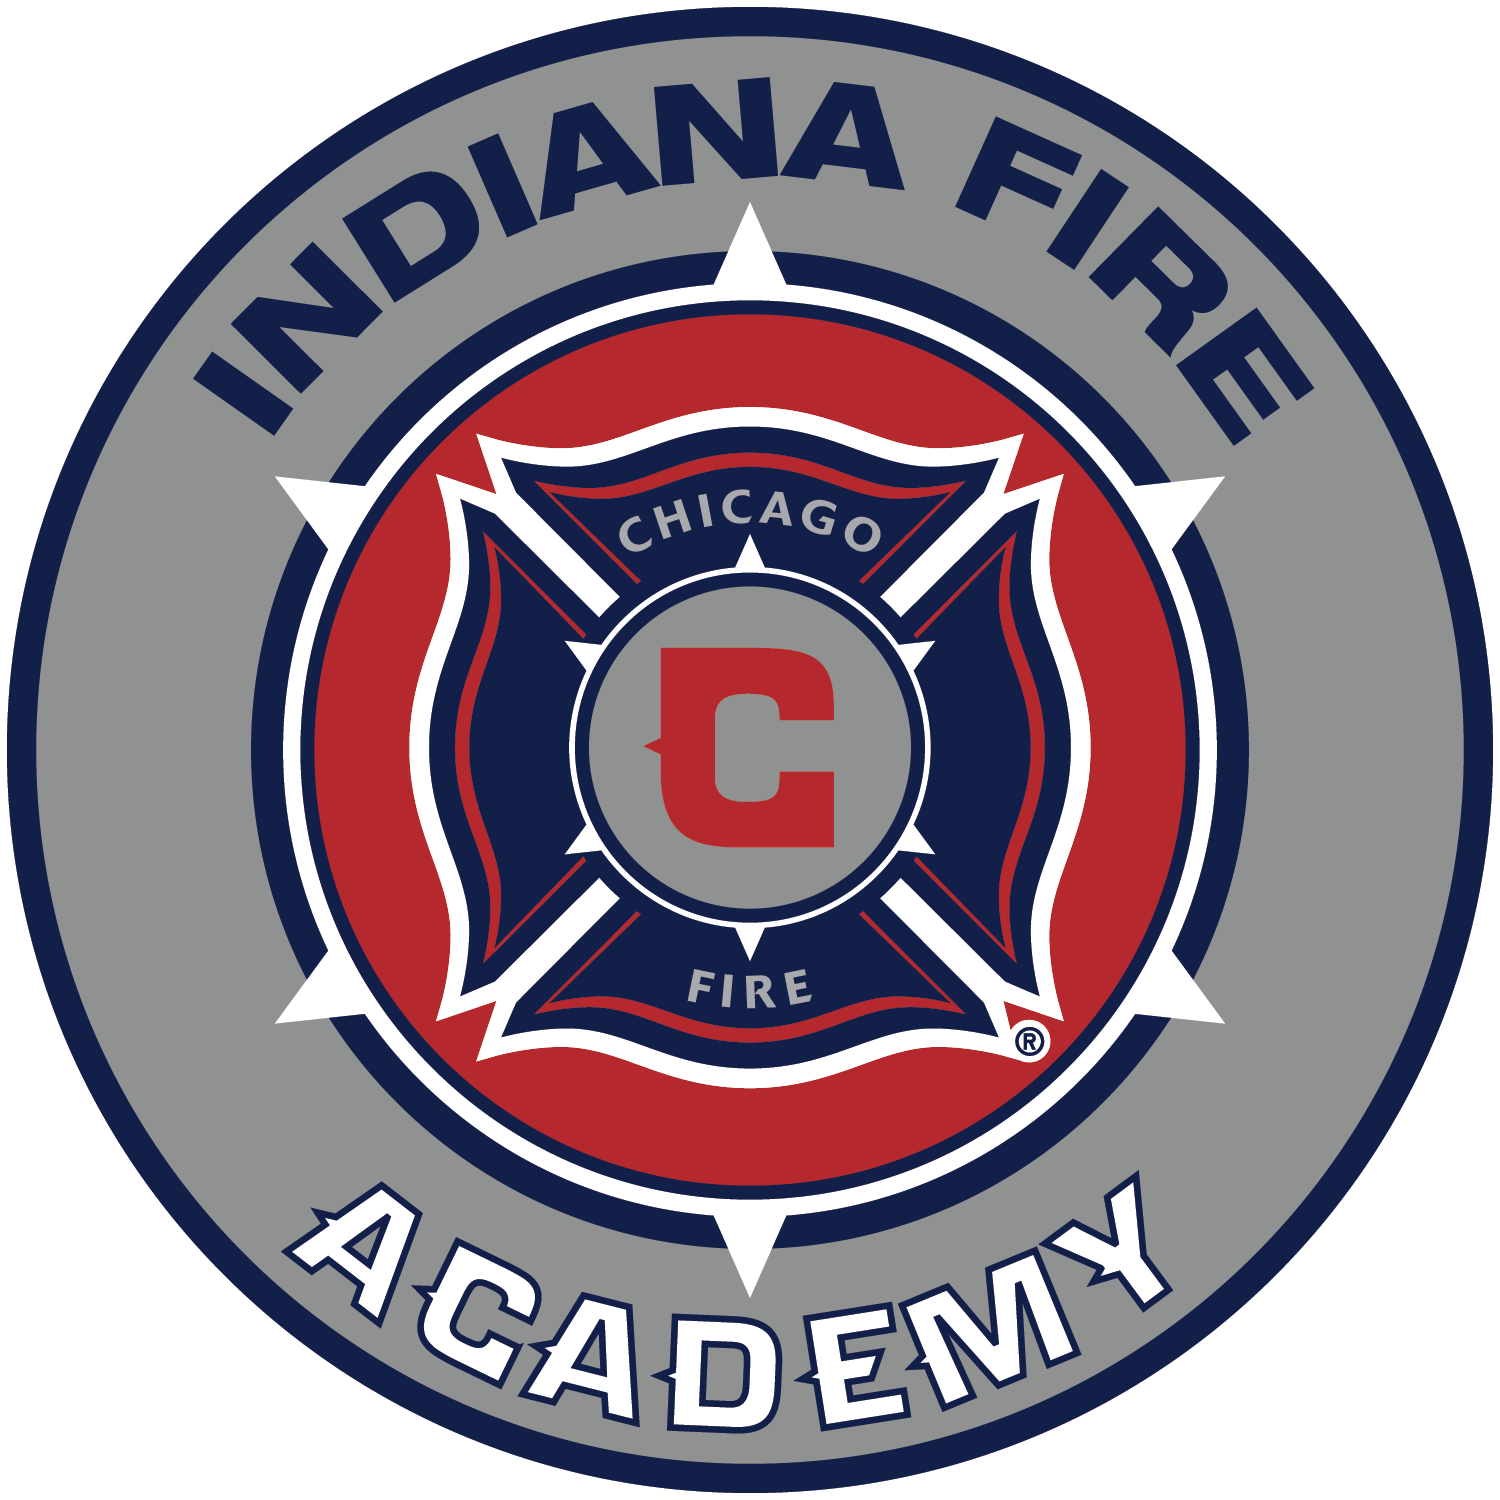 Indiana_Fire_Academy_Club_Logo_png.png